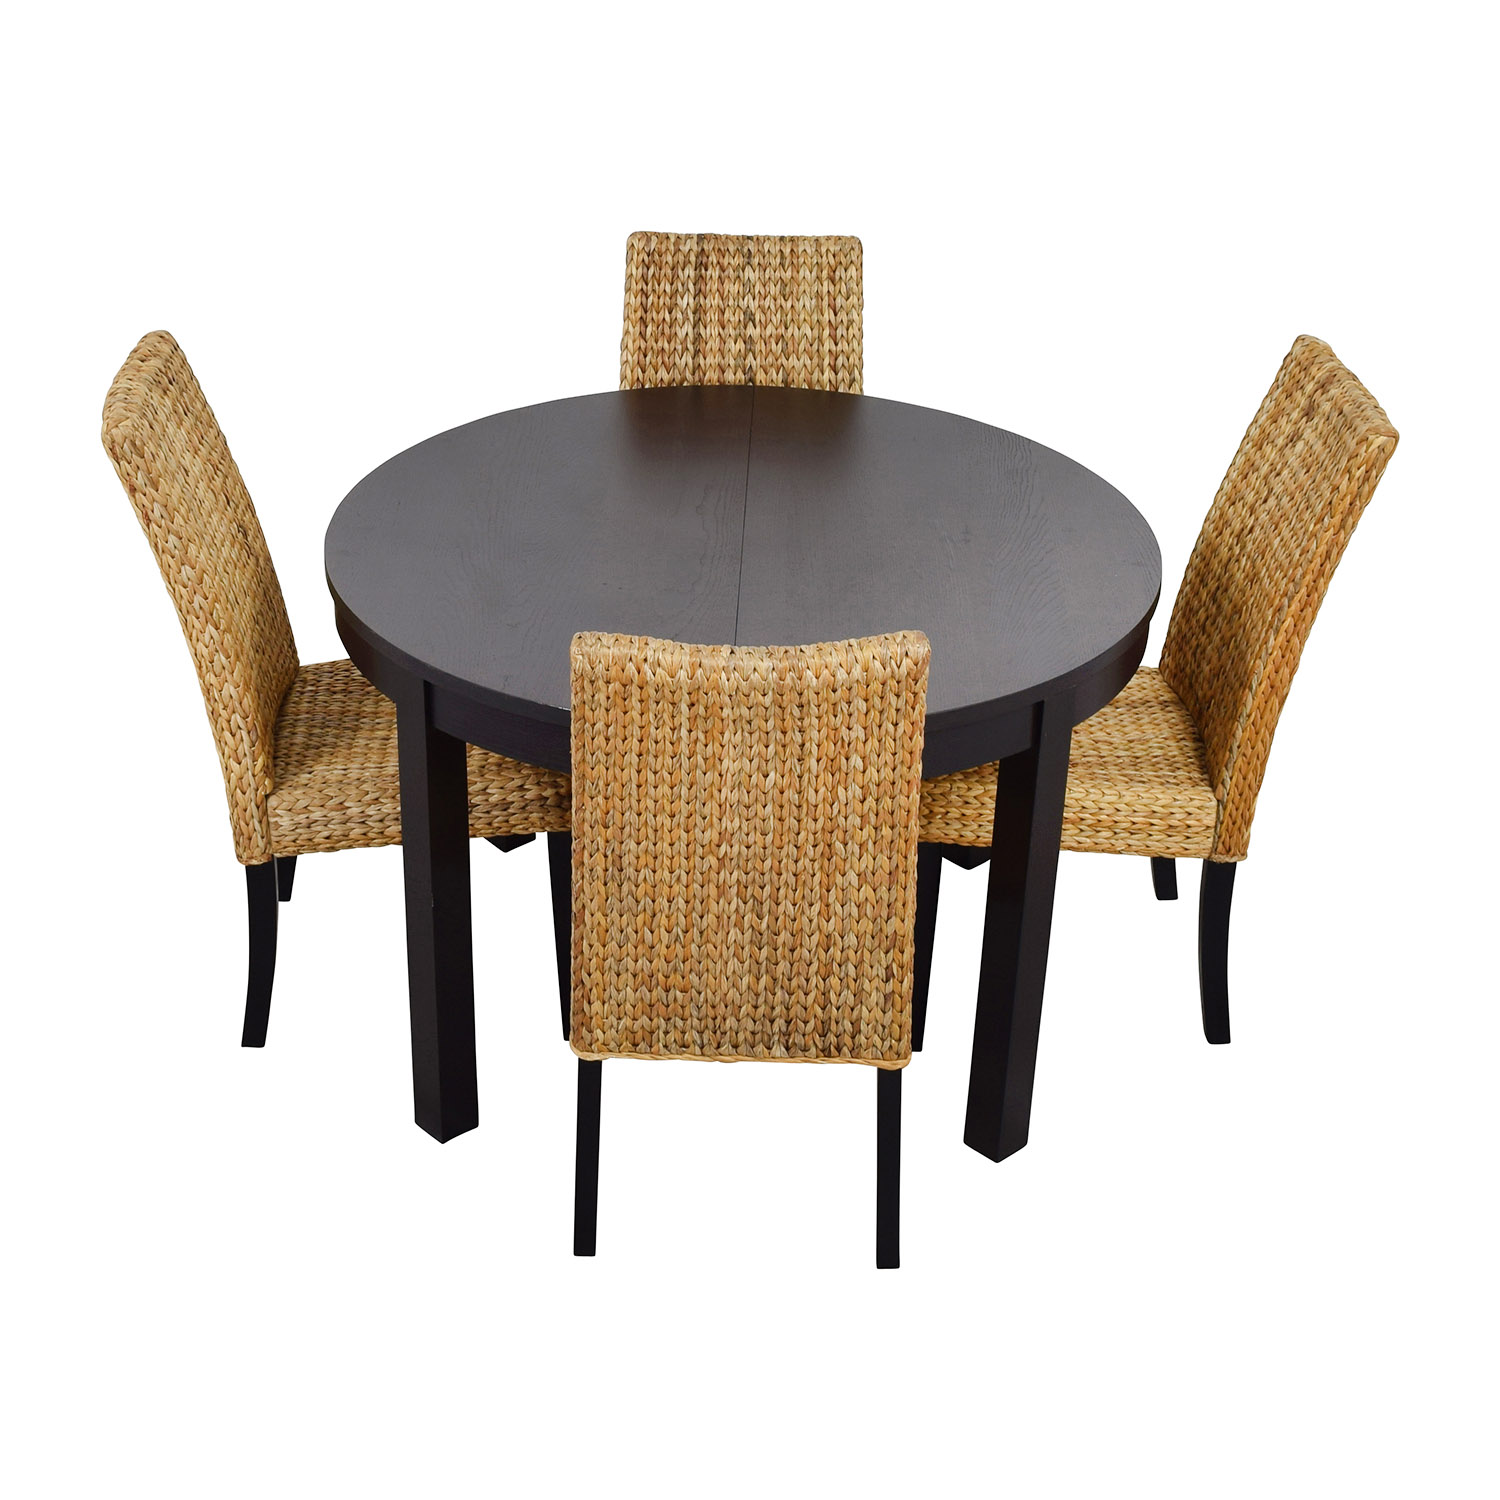 Macys & IKEA Round Black Dining Table Set with Four Chairs brown